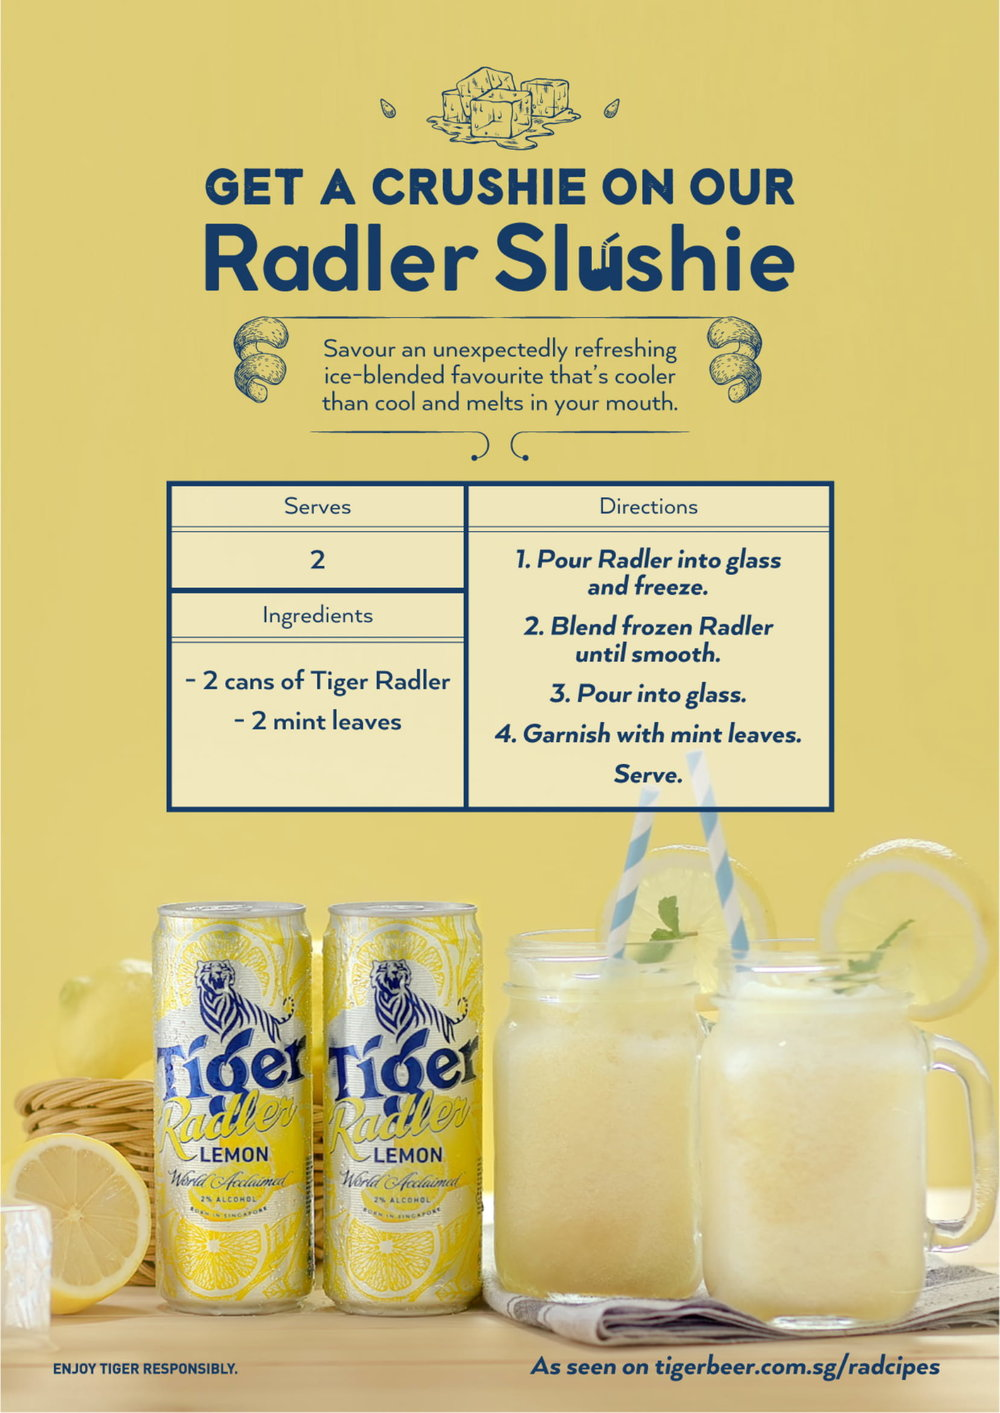 Tiger Radler Radcipes_eBook_20180418_final-2.jpg